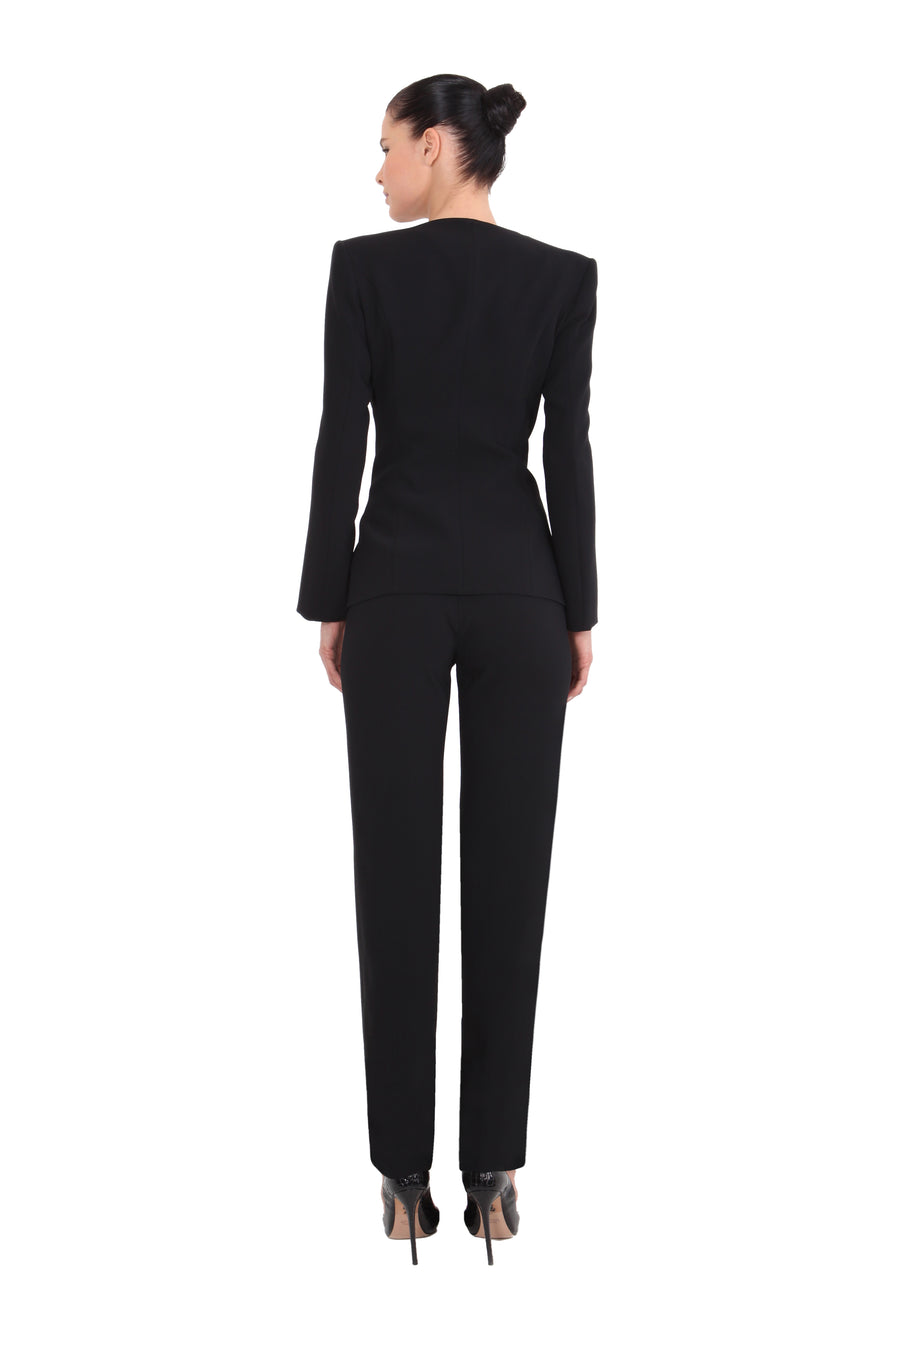 'Sophia' Folded Suit